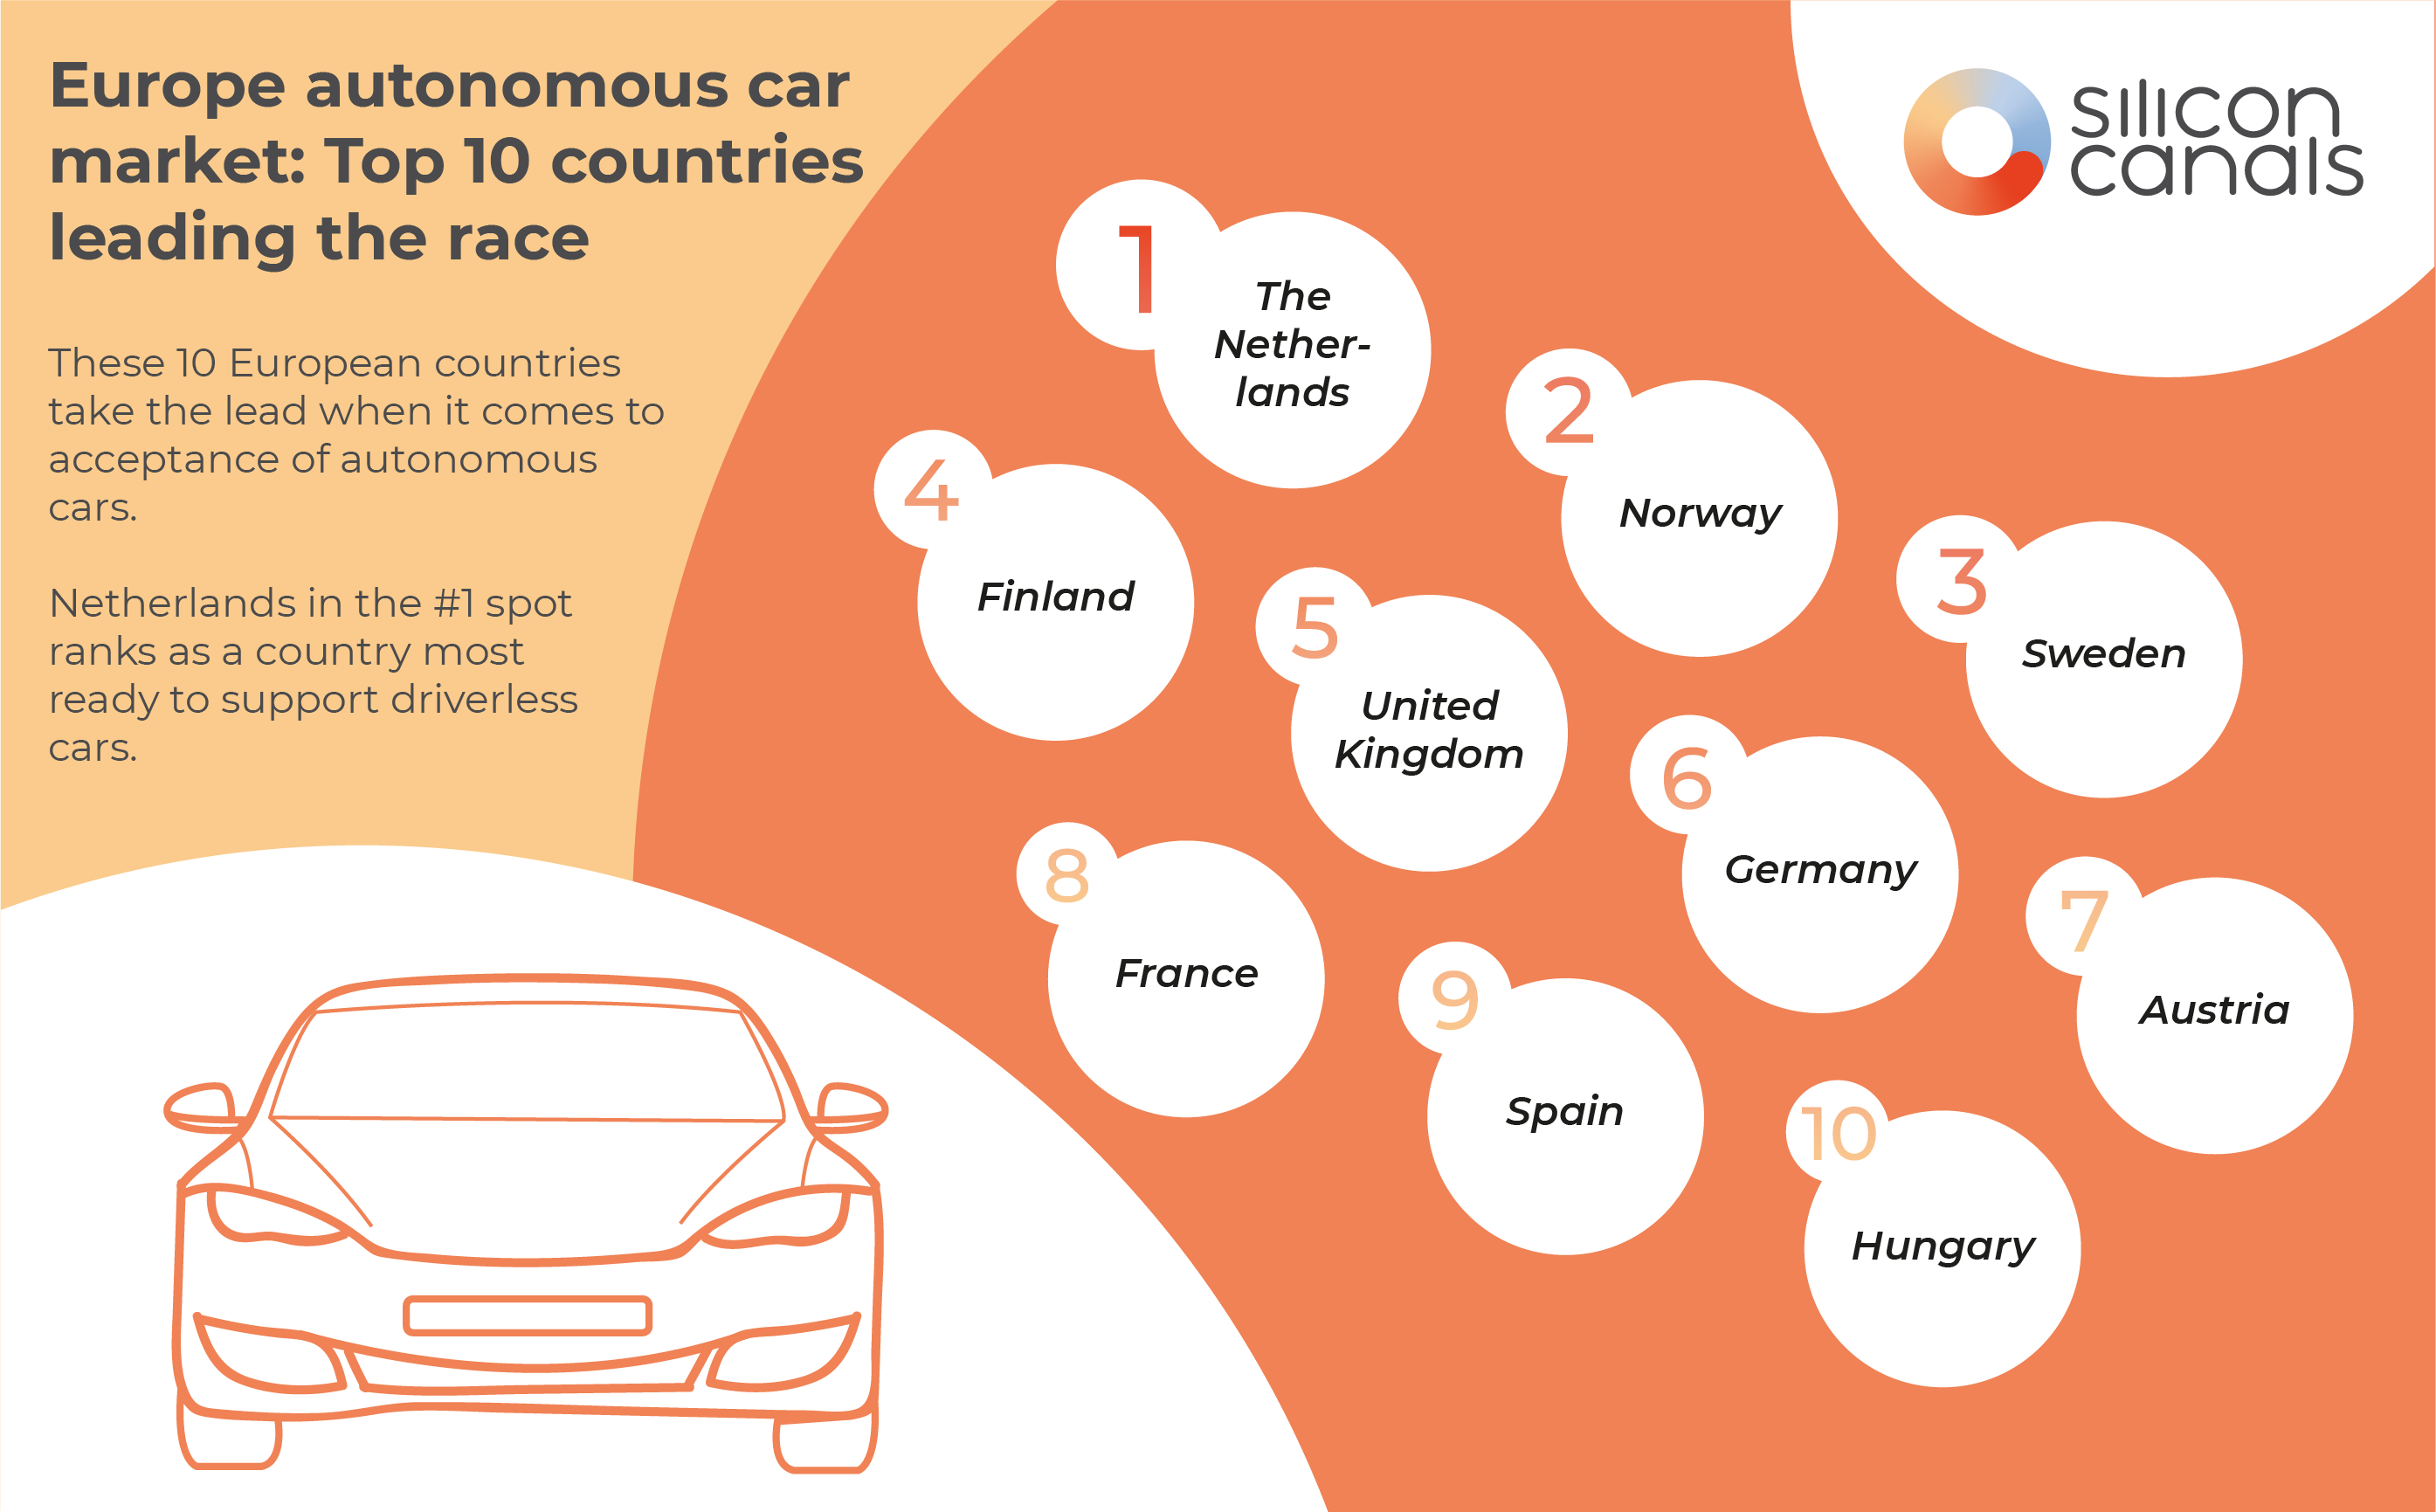 Europe autonomous car market: Top 10 countries leading the